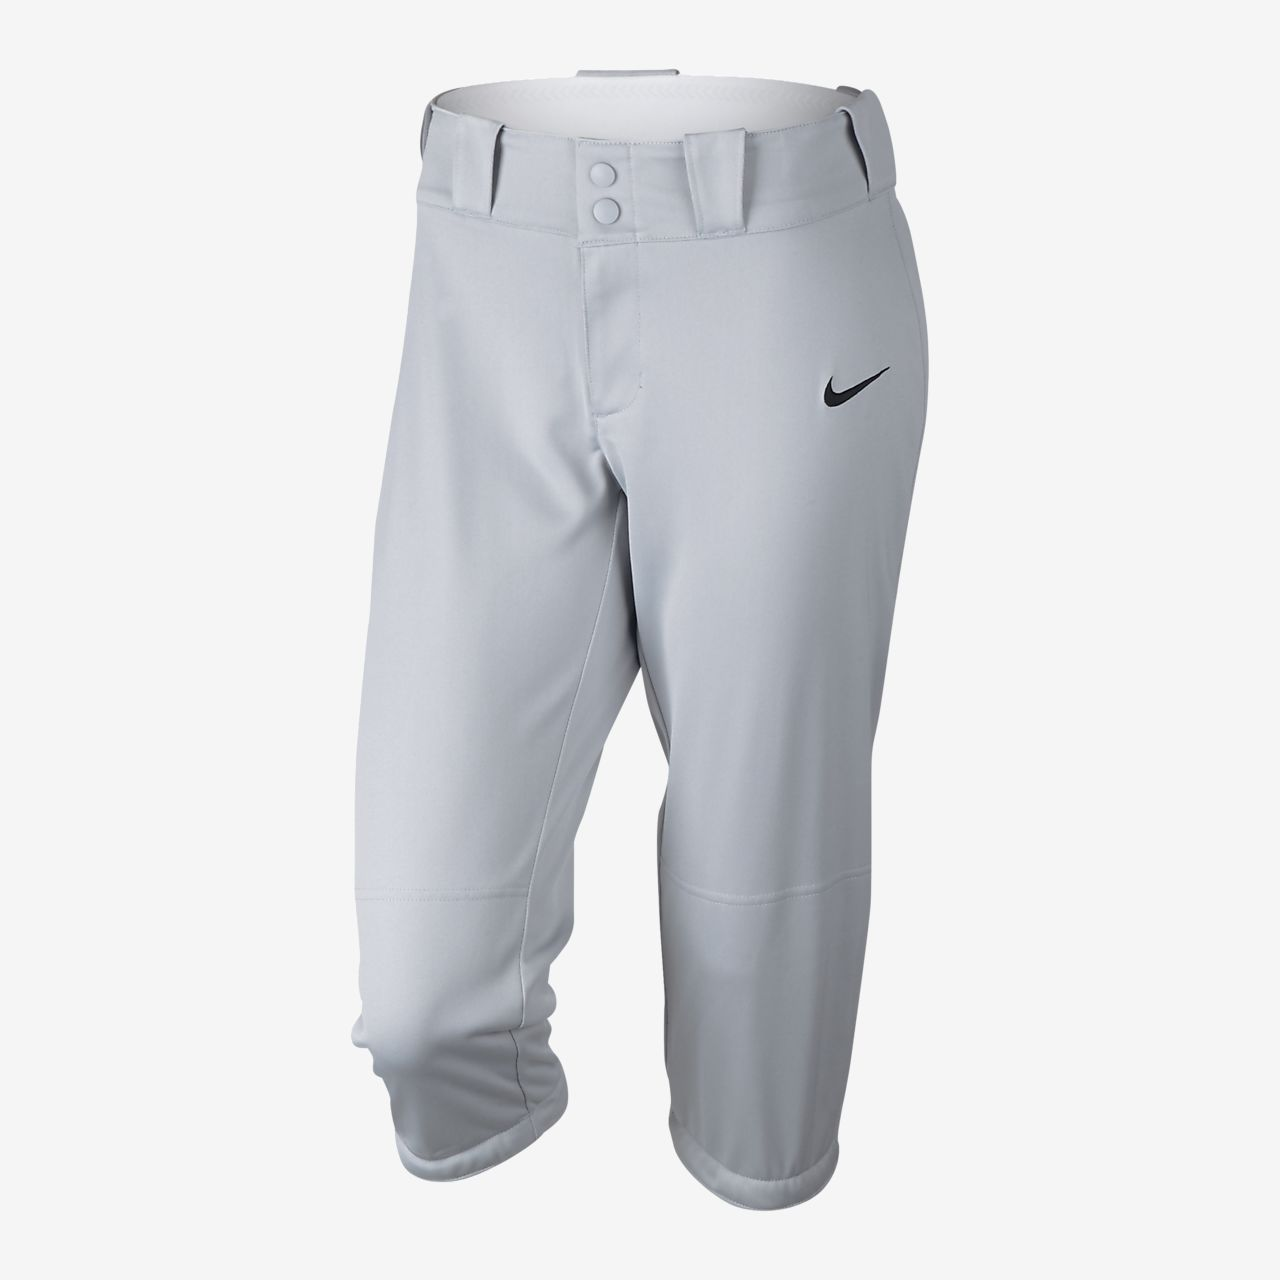 Nike Diamond Invader 3/4 Women's Softball Pants